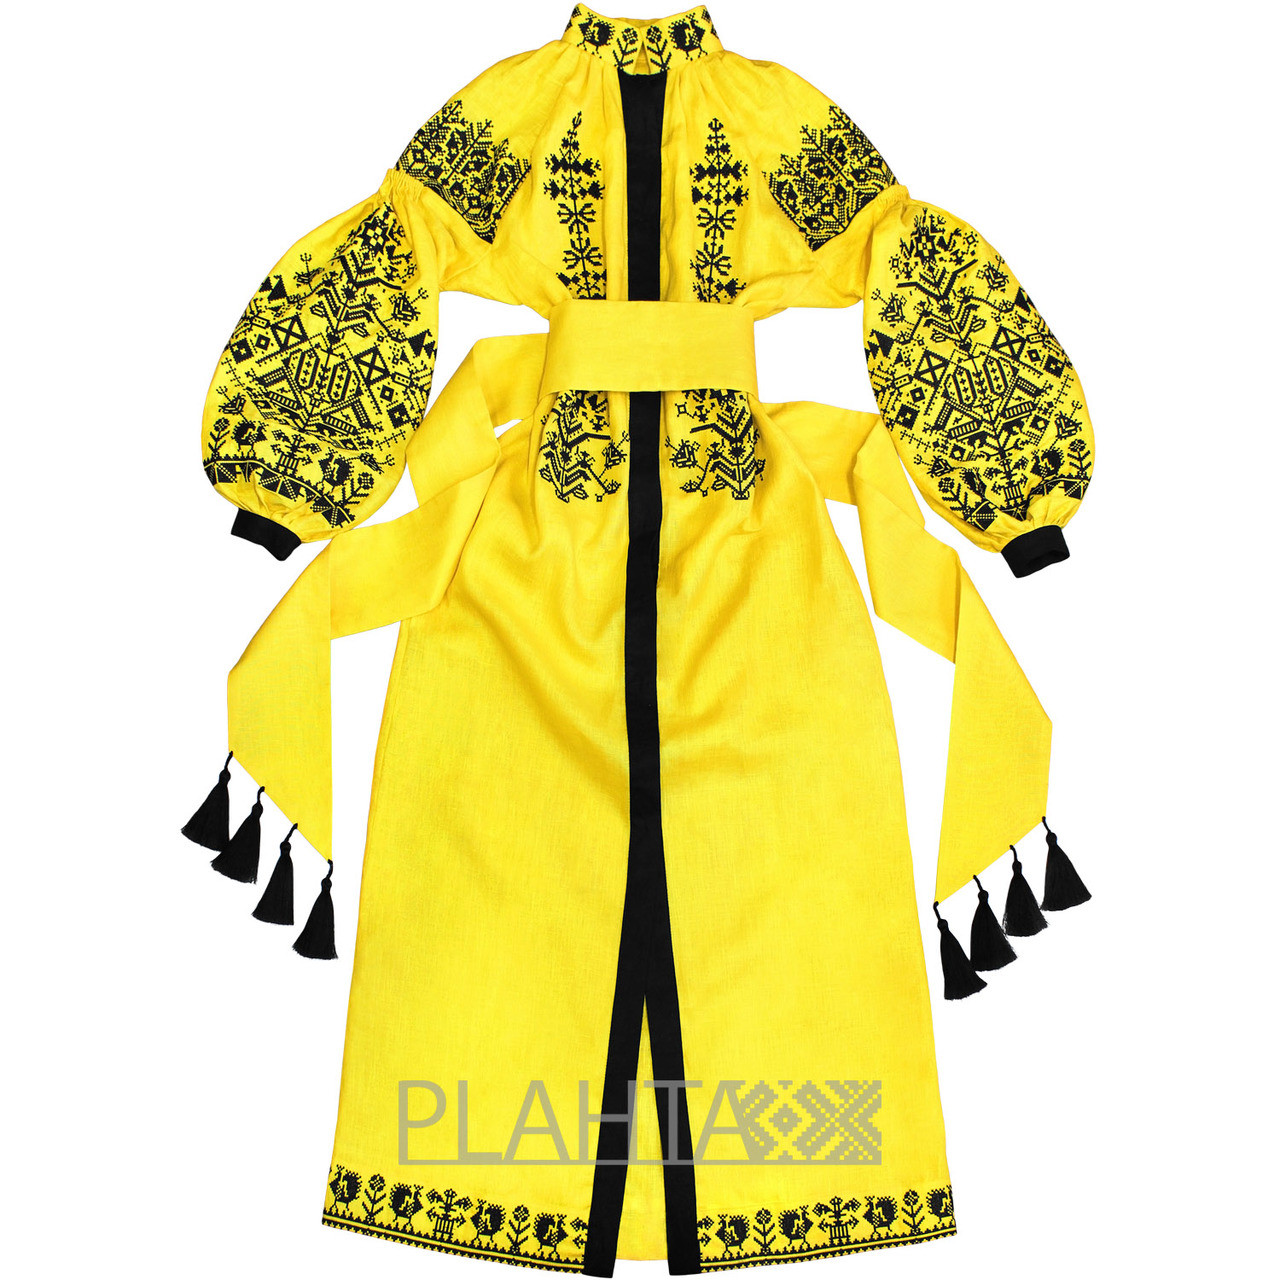 Long Yellow Dress With Embroidery King Bird Plahta